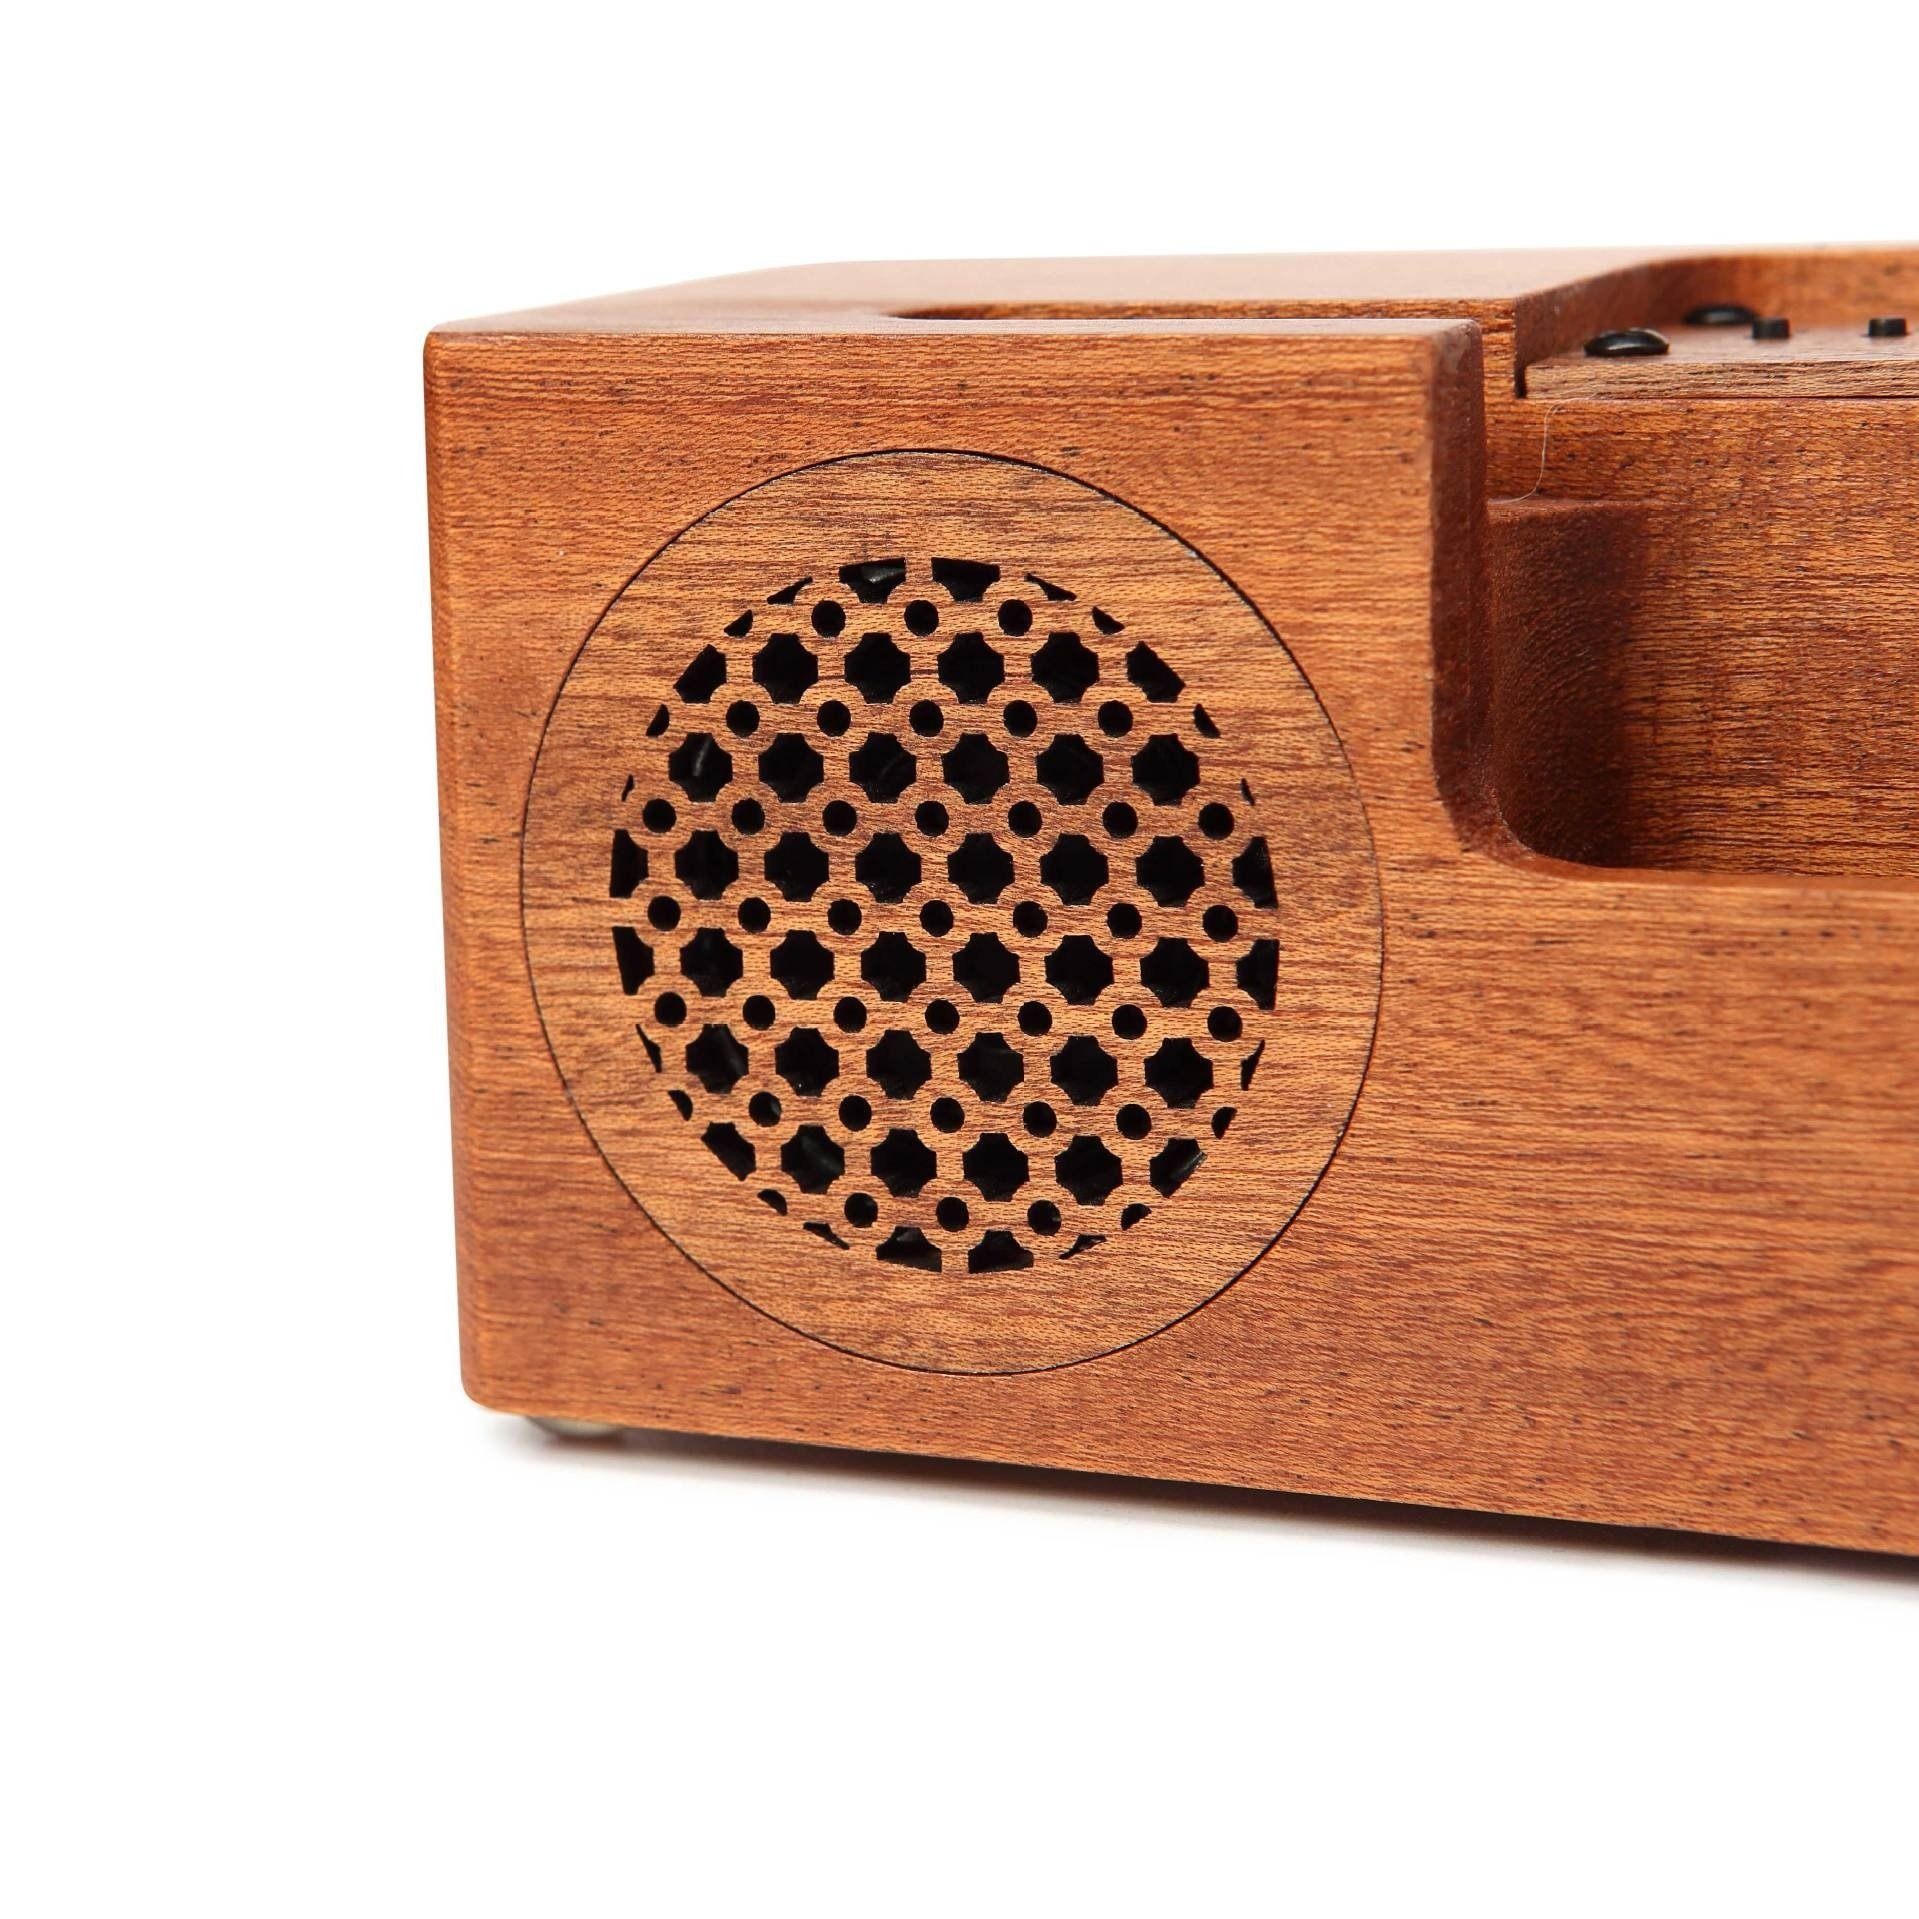 Solid wood mobile phone bracket vogue Bluetooth sound box car audio desktop sound creative personality exquisite gift